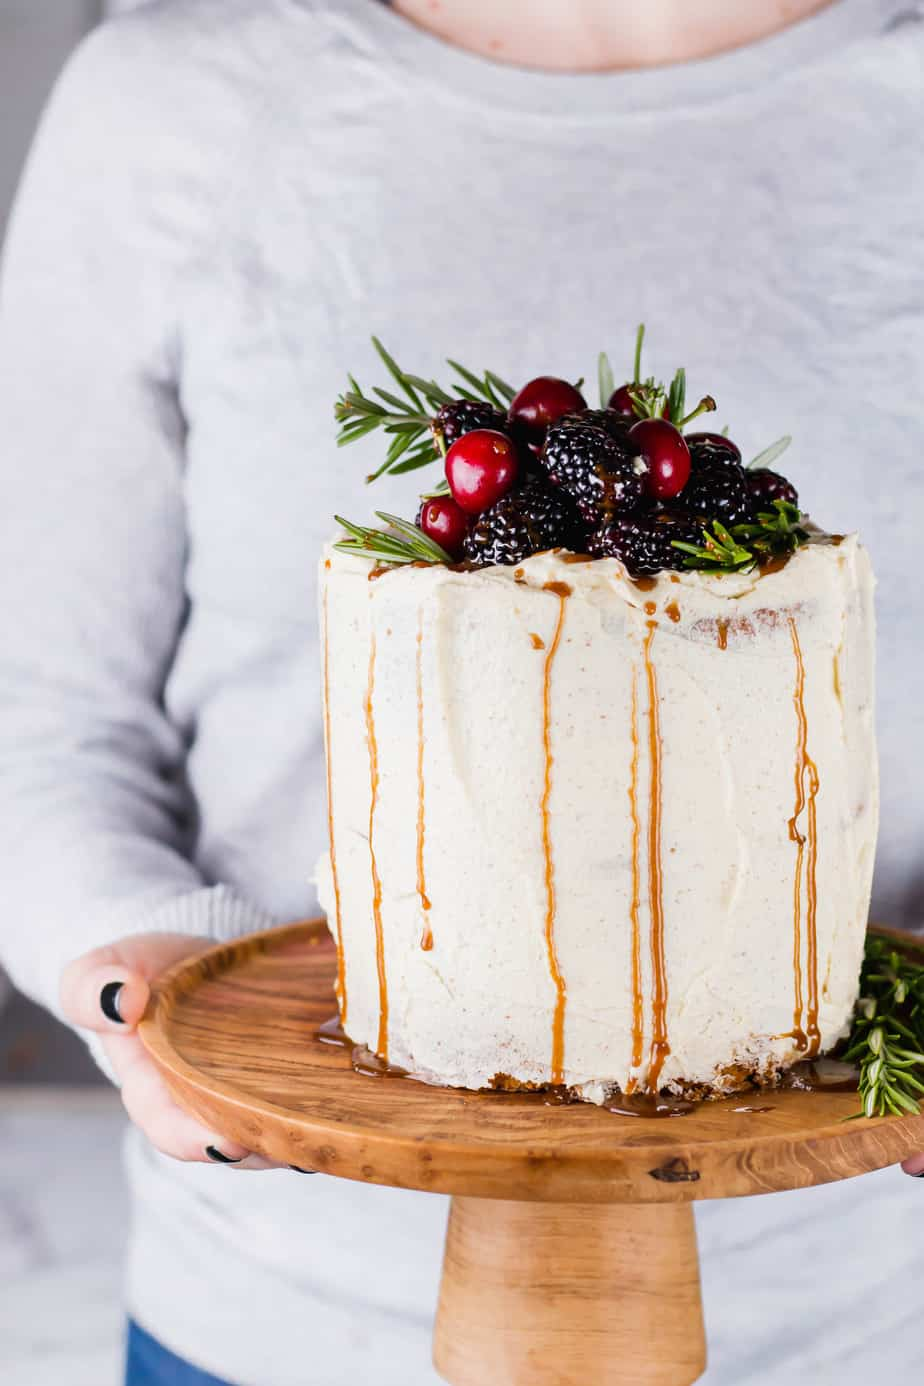 This Brown Butter Cake with Berries and Cinnamon Honey is the ultimate festive season treat. A delicious soft nutty cake, covered and filled with a brown butter buttercream.